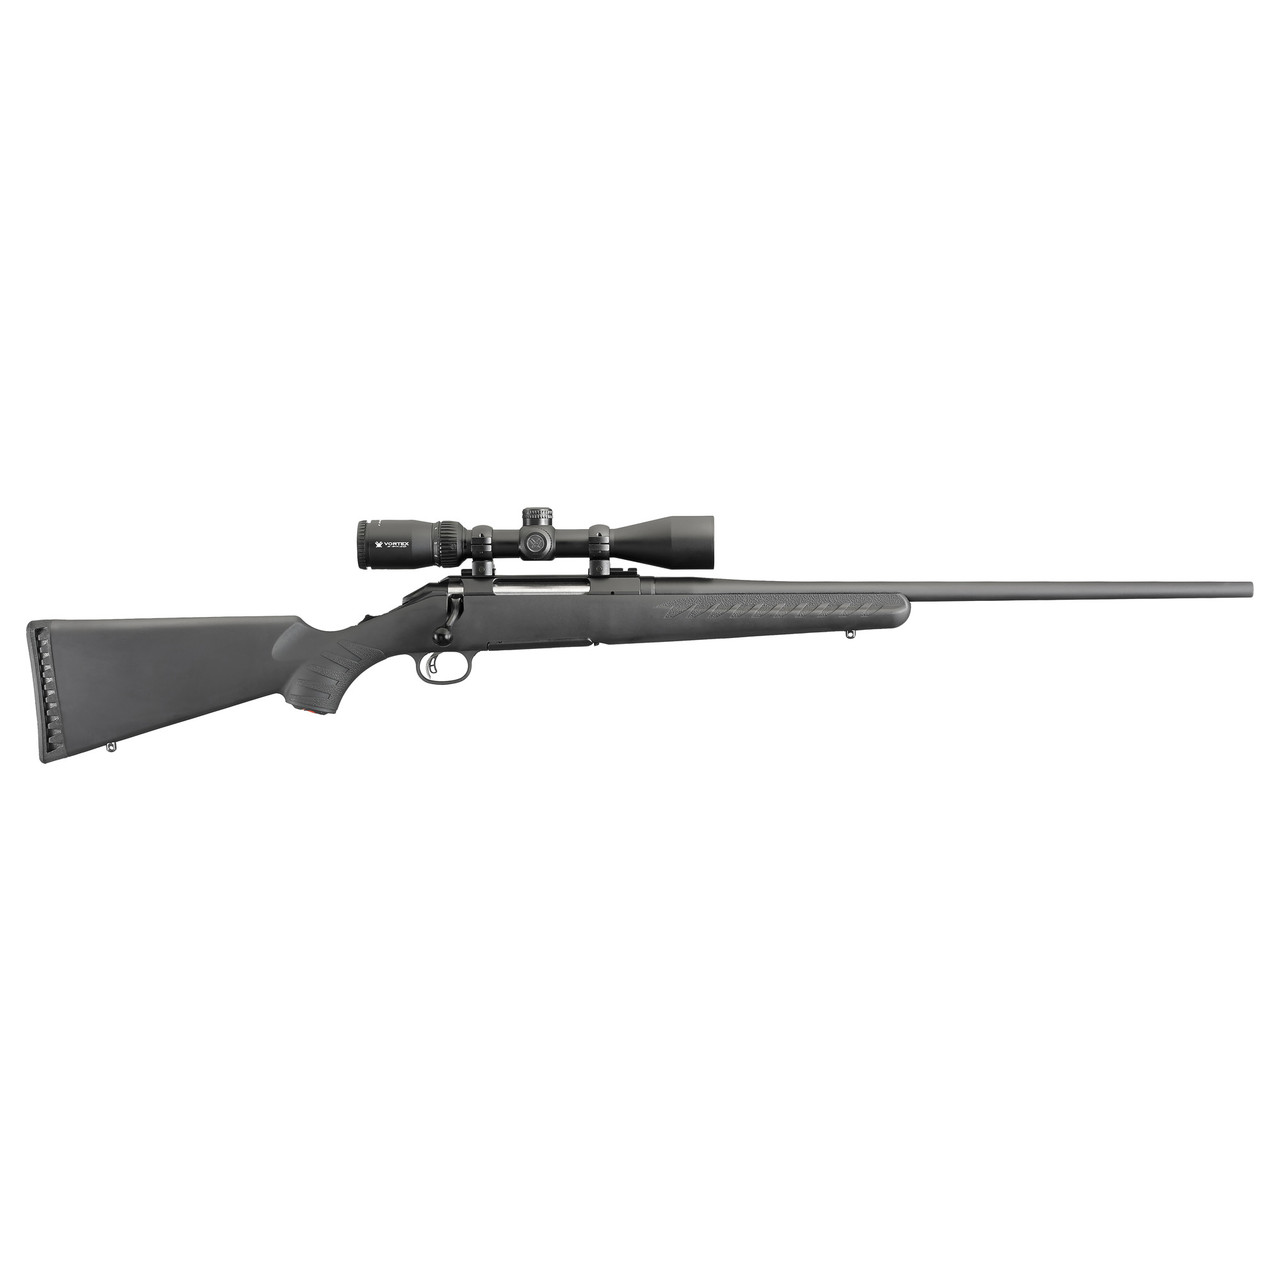 Ruger American Bolt Action w/ Vortex Scope CALIFORNIA LEGAL - .308 Win